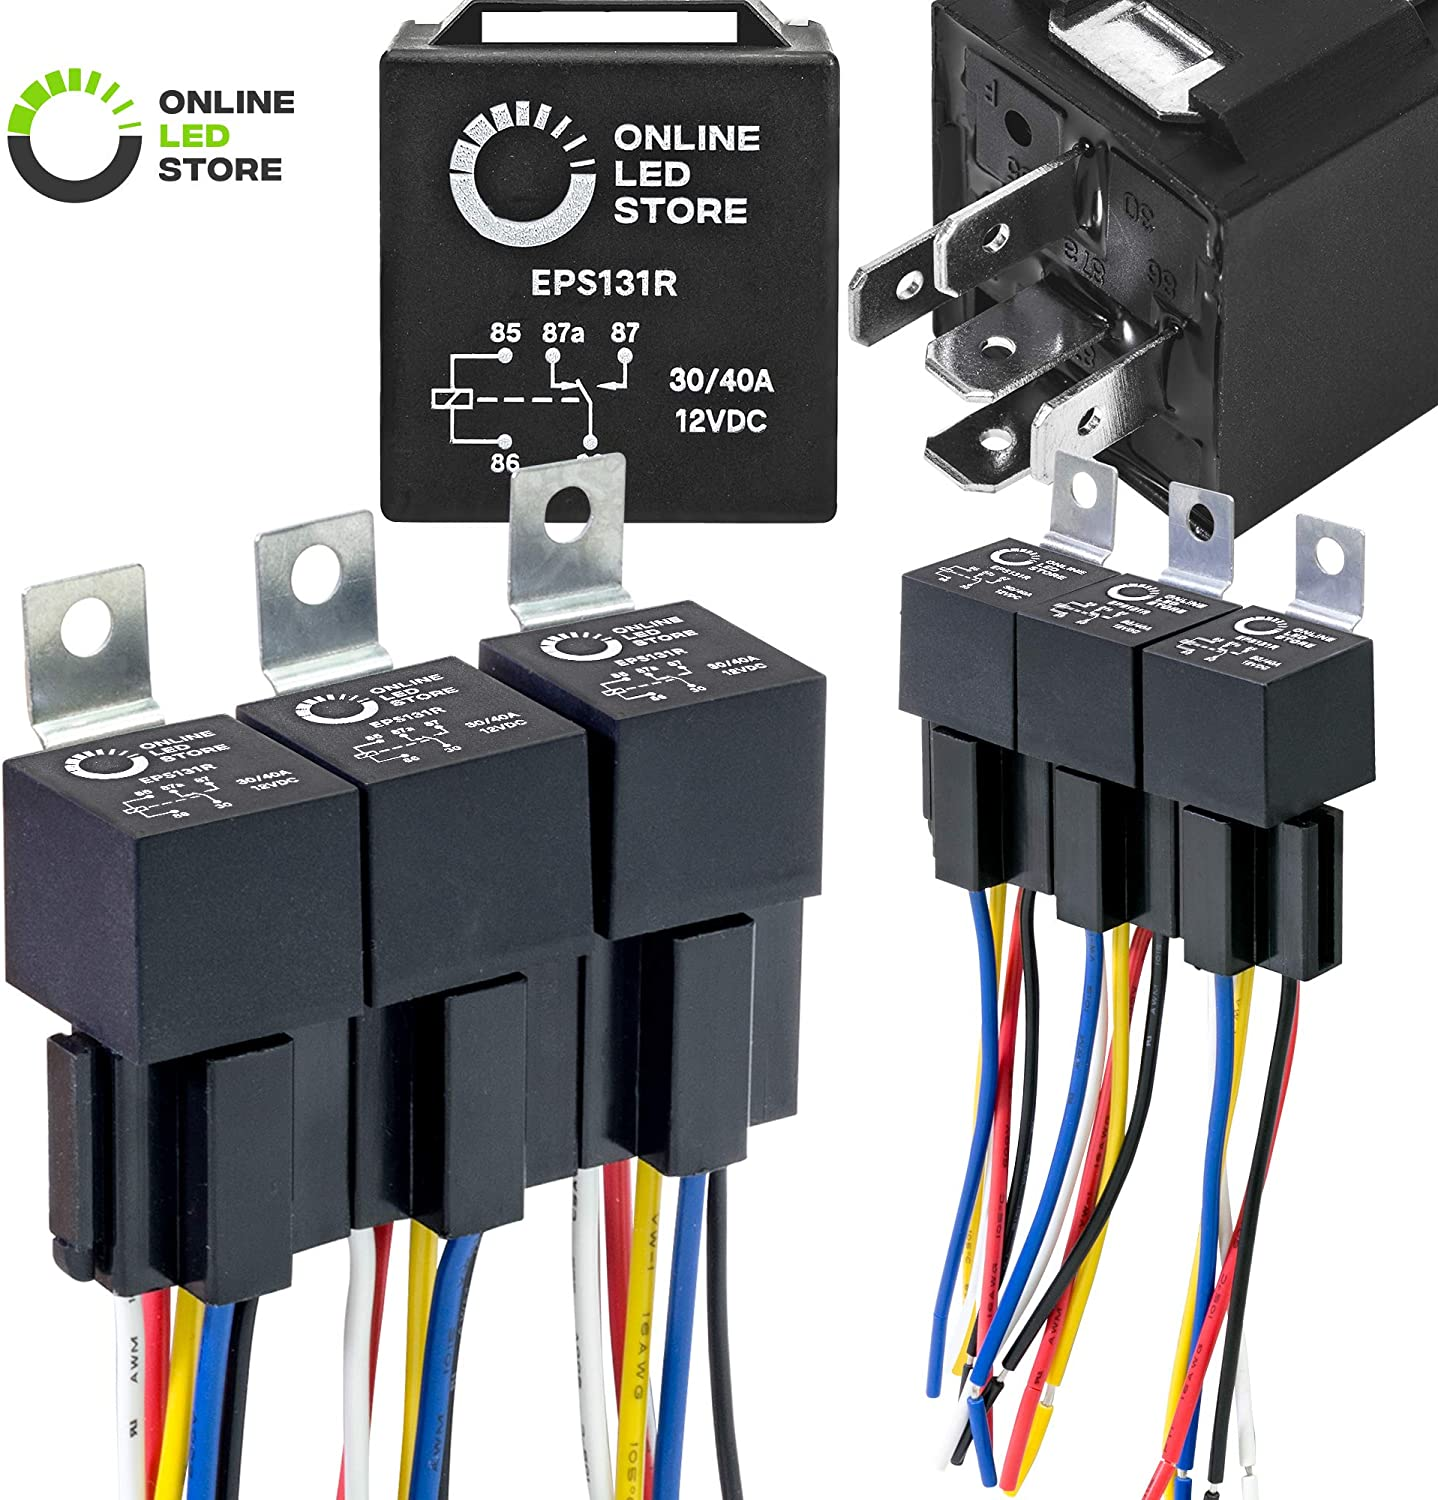 ONLINE LED STORE 6 Pack - 12V DC 40/30 Amp 5-Pin SPDT Automotive Relay Harness Set (Bosch Style with Interlocking Harnesses)